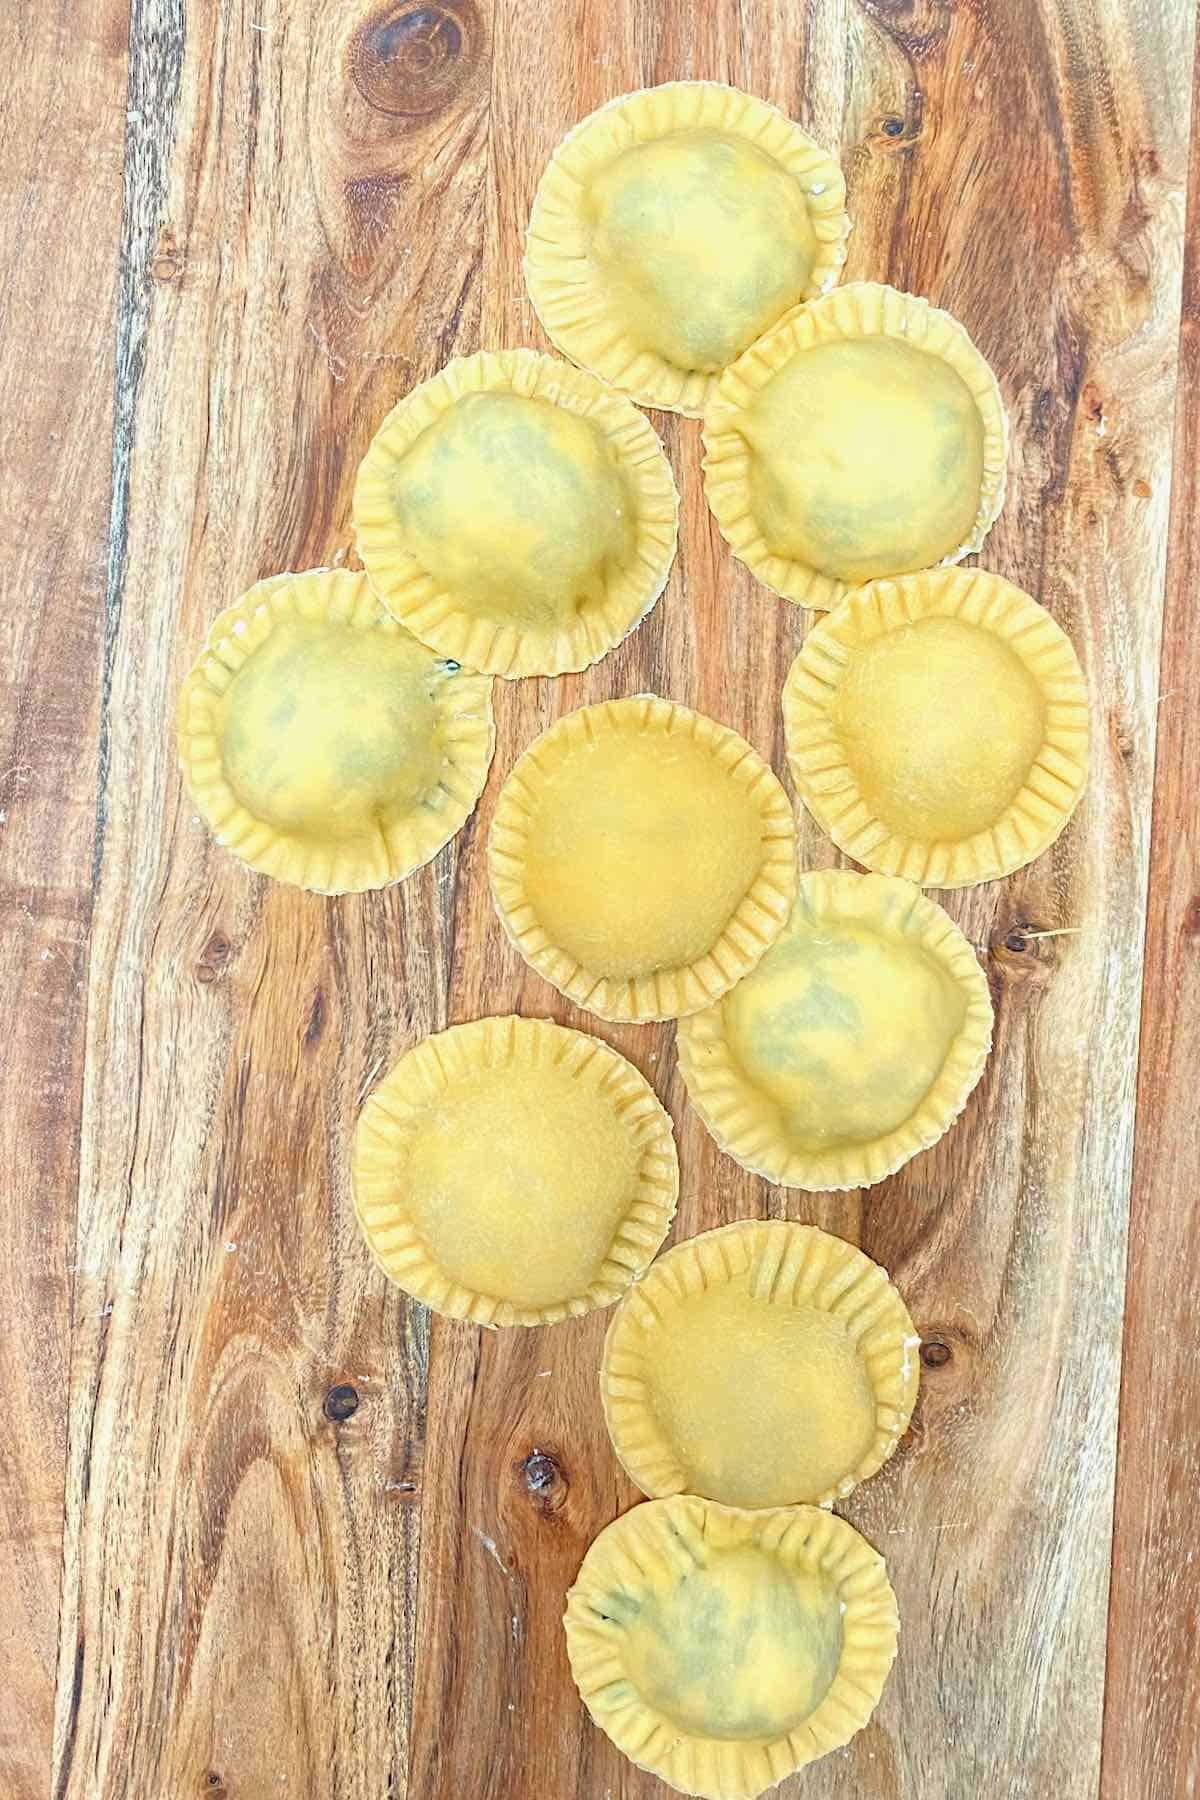 Homemade ravioli filled with spinach